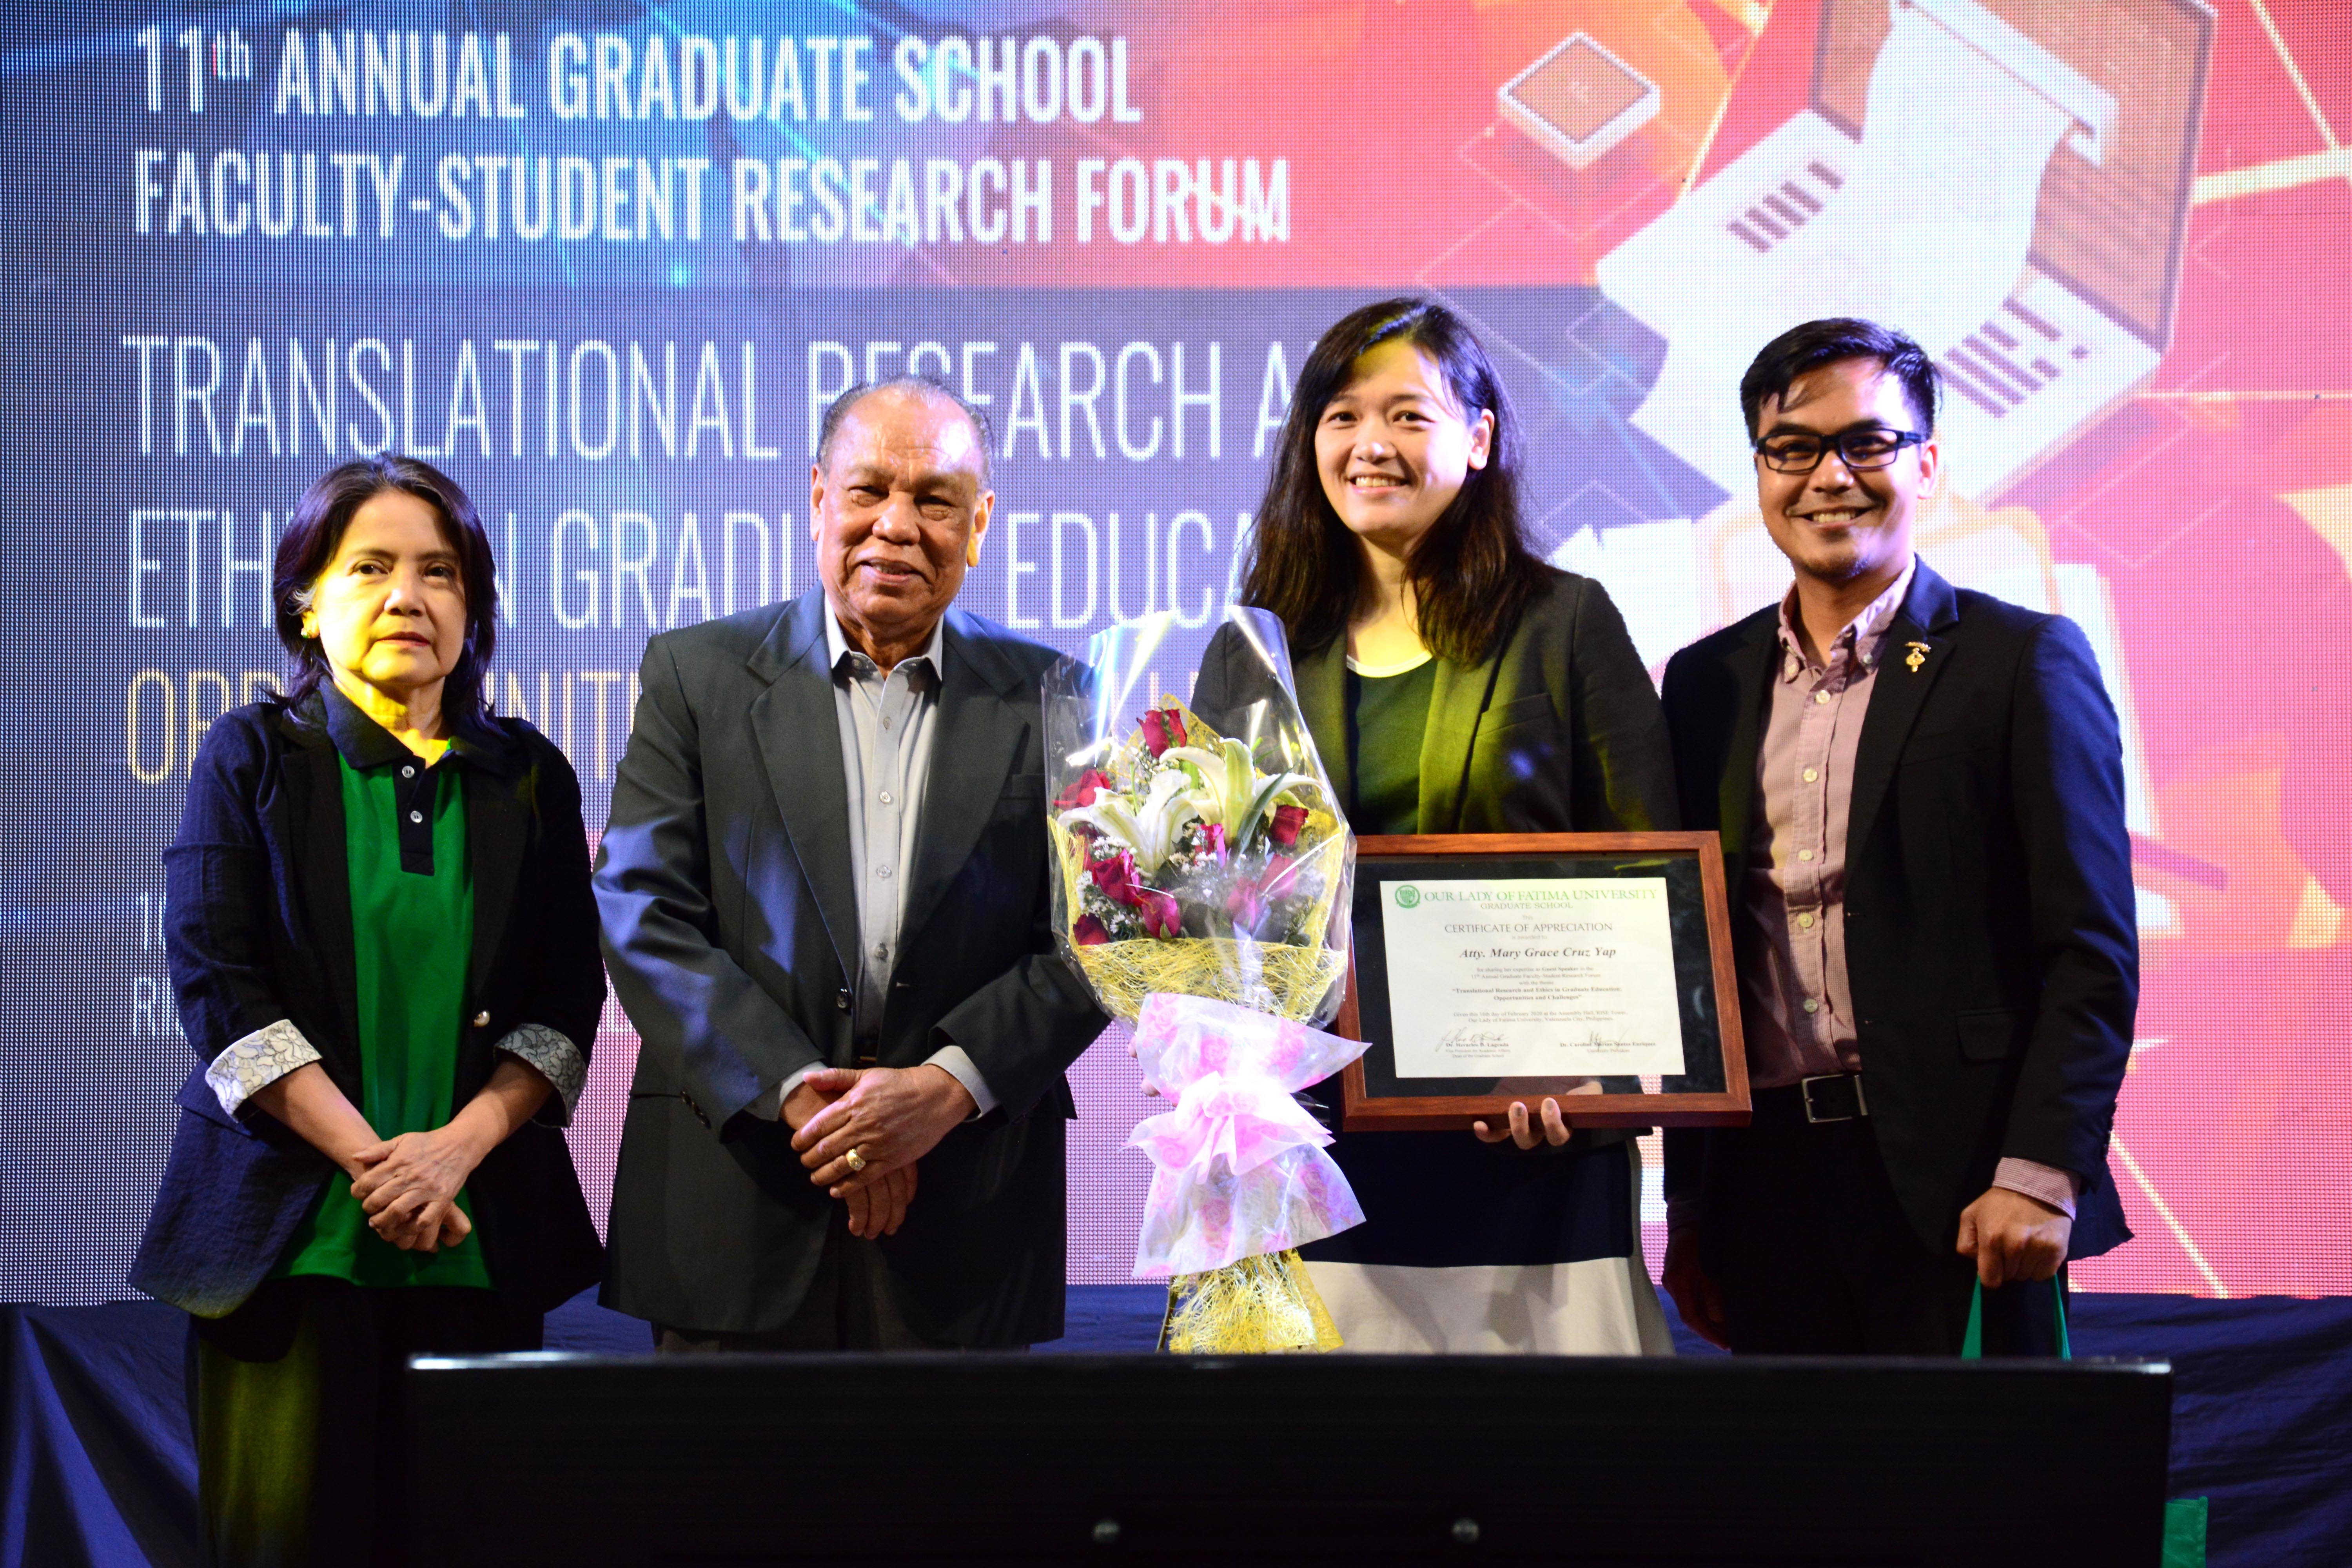 Graduate School students engage in an enriching Research Forum